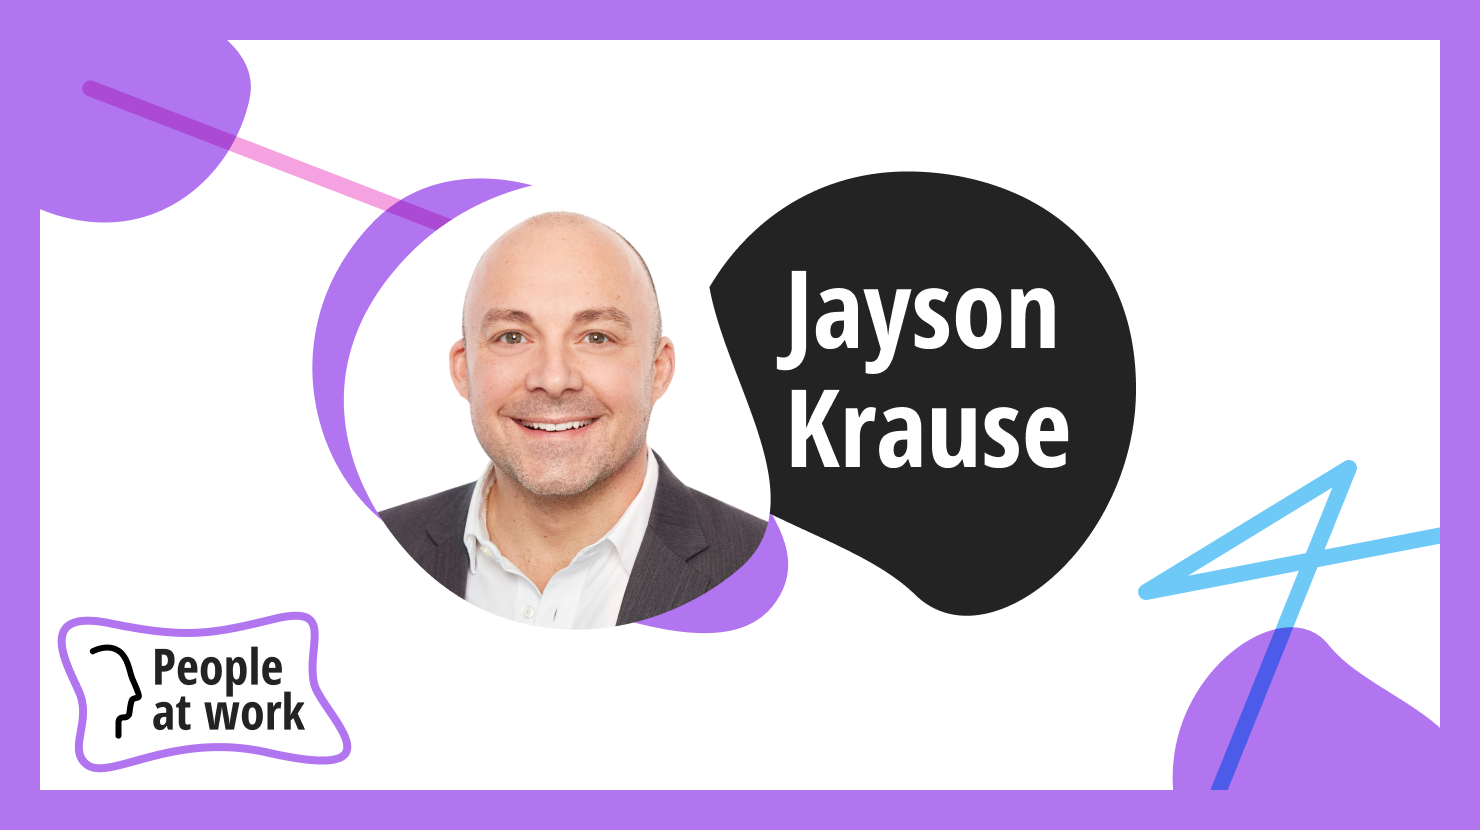 Practice extreme intentionality with Jayson Krause